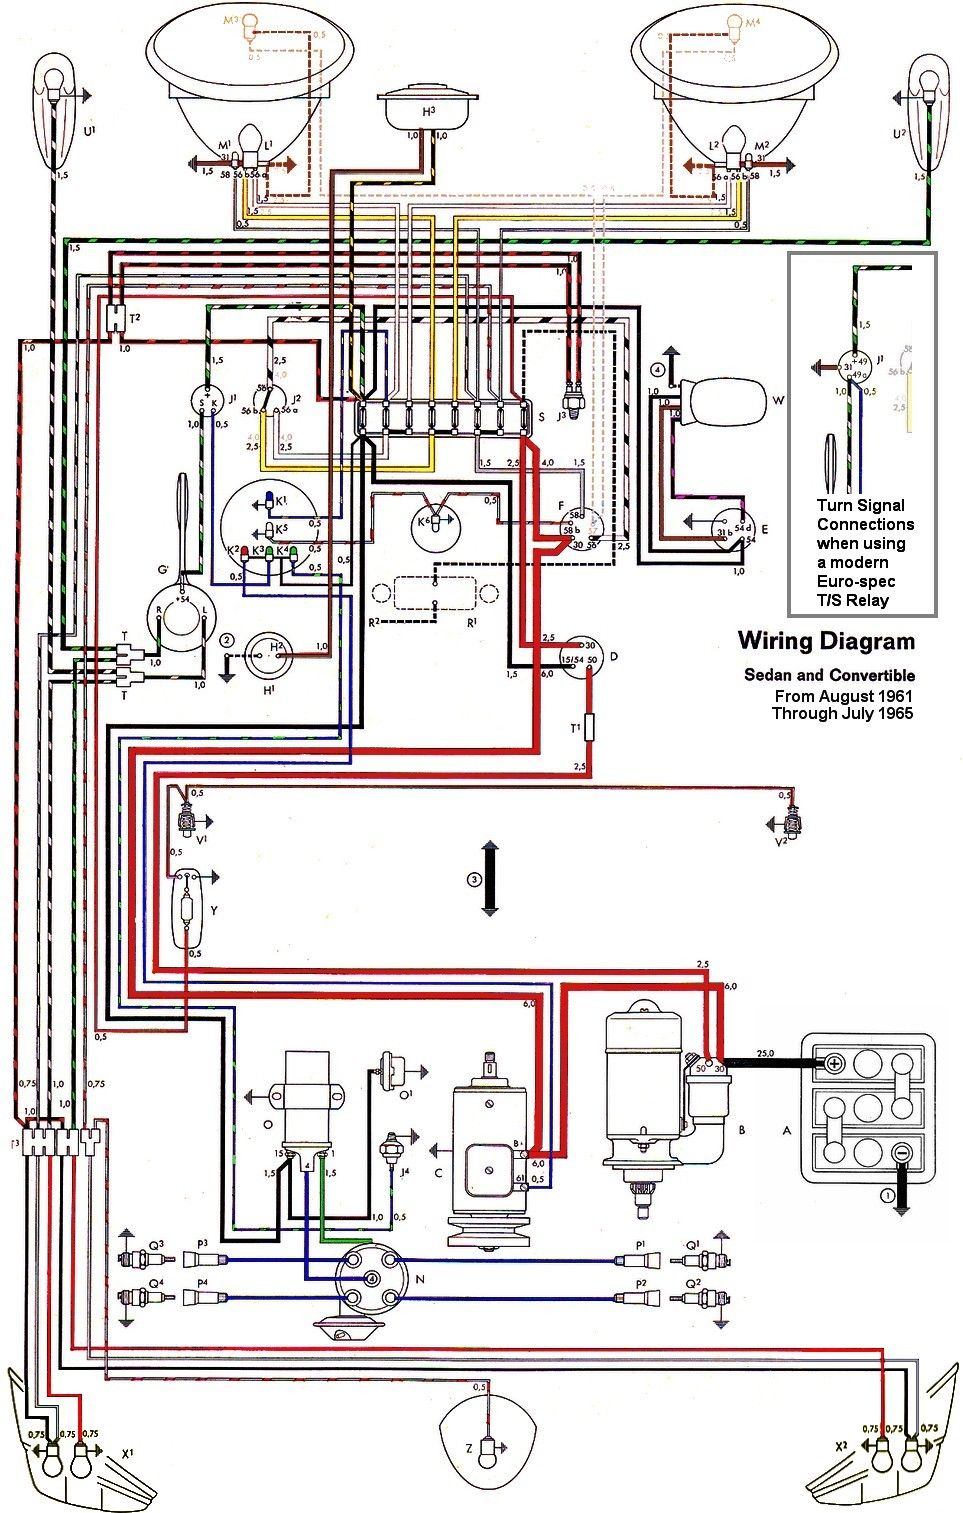 Vw Baja Wiring Diagram Data Schematic For Ssr 110 Atv Beetle Sedan And Convertible 1961 1965 In Rh Pinterest Com 150